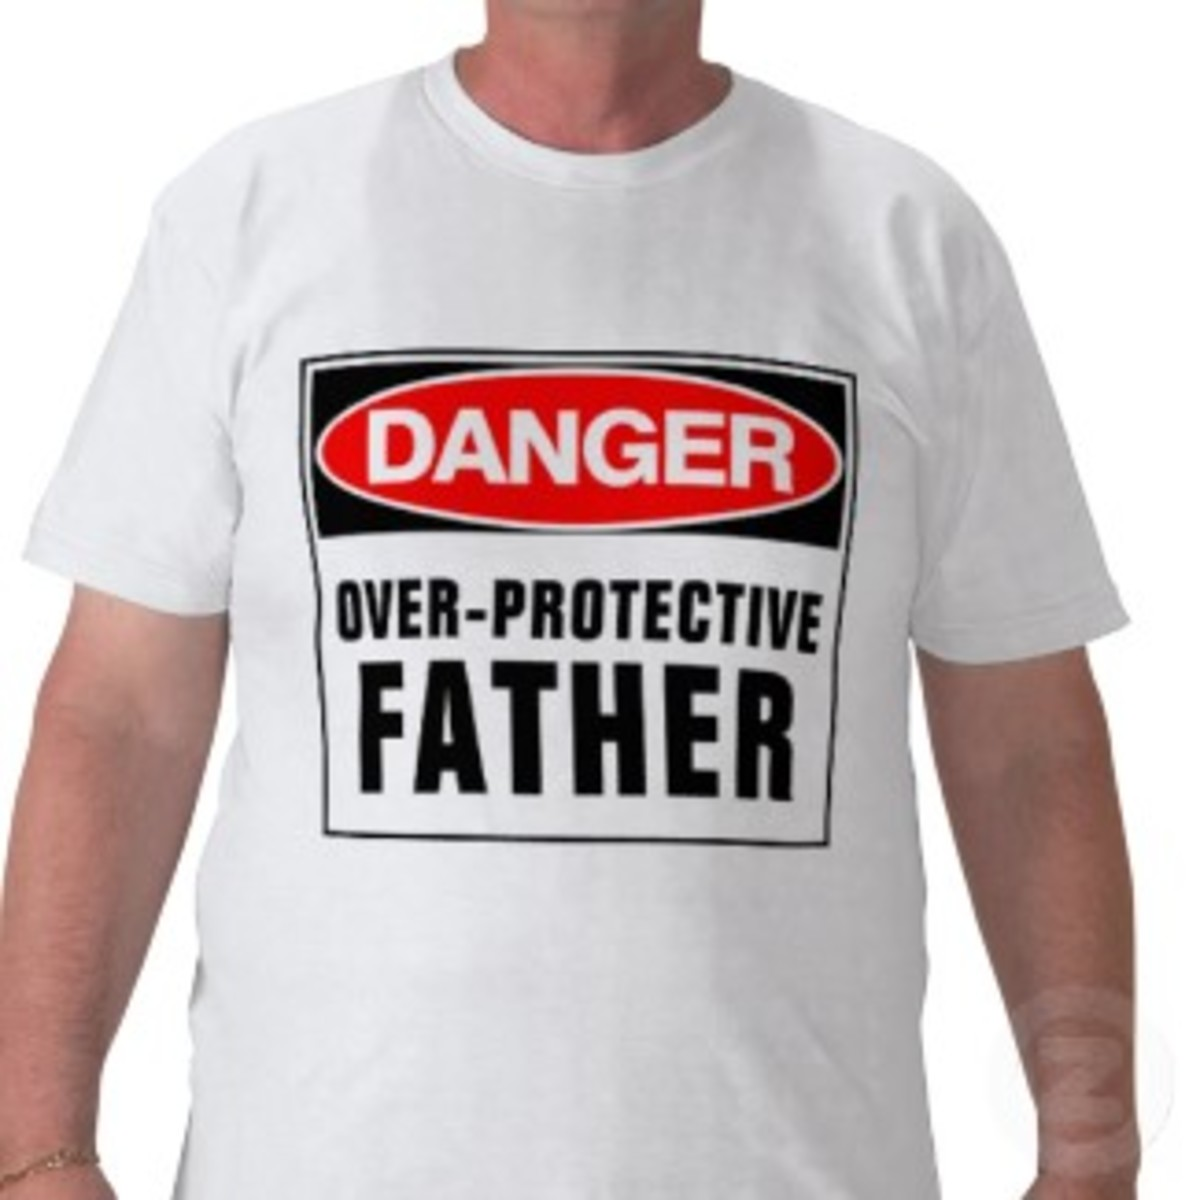 Controlling and Abusing Fathers